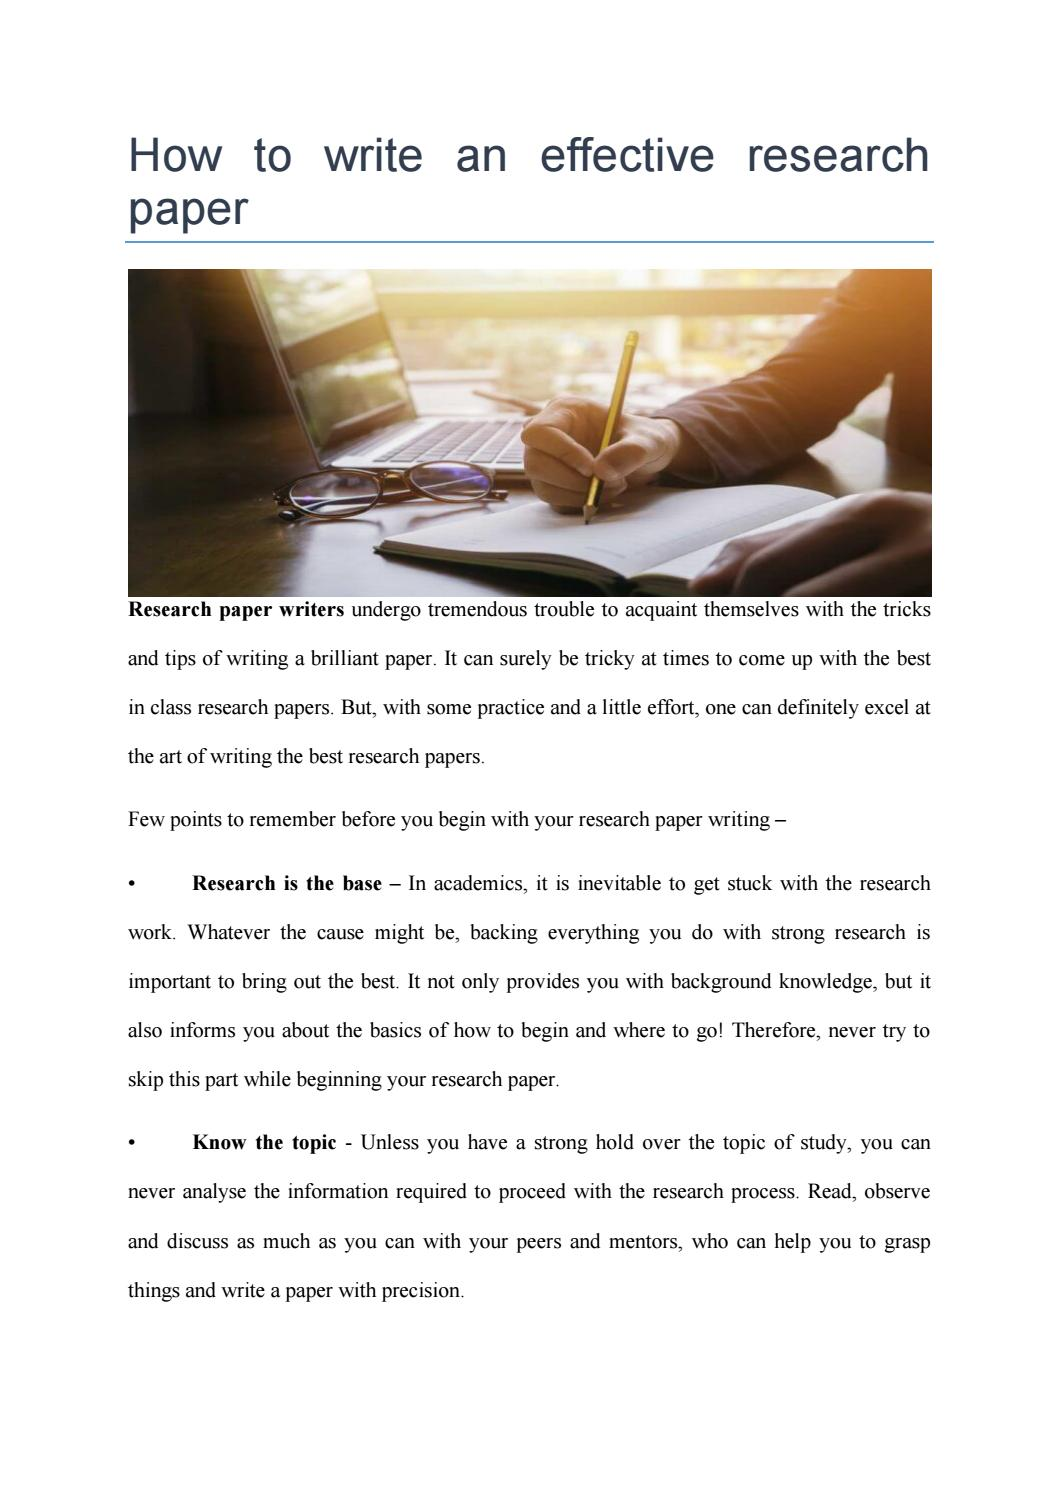 023 Page 1 Research Paper Tips For Wondrous Papers Good Effective Writing Full